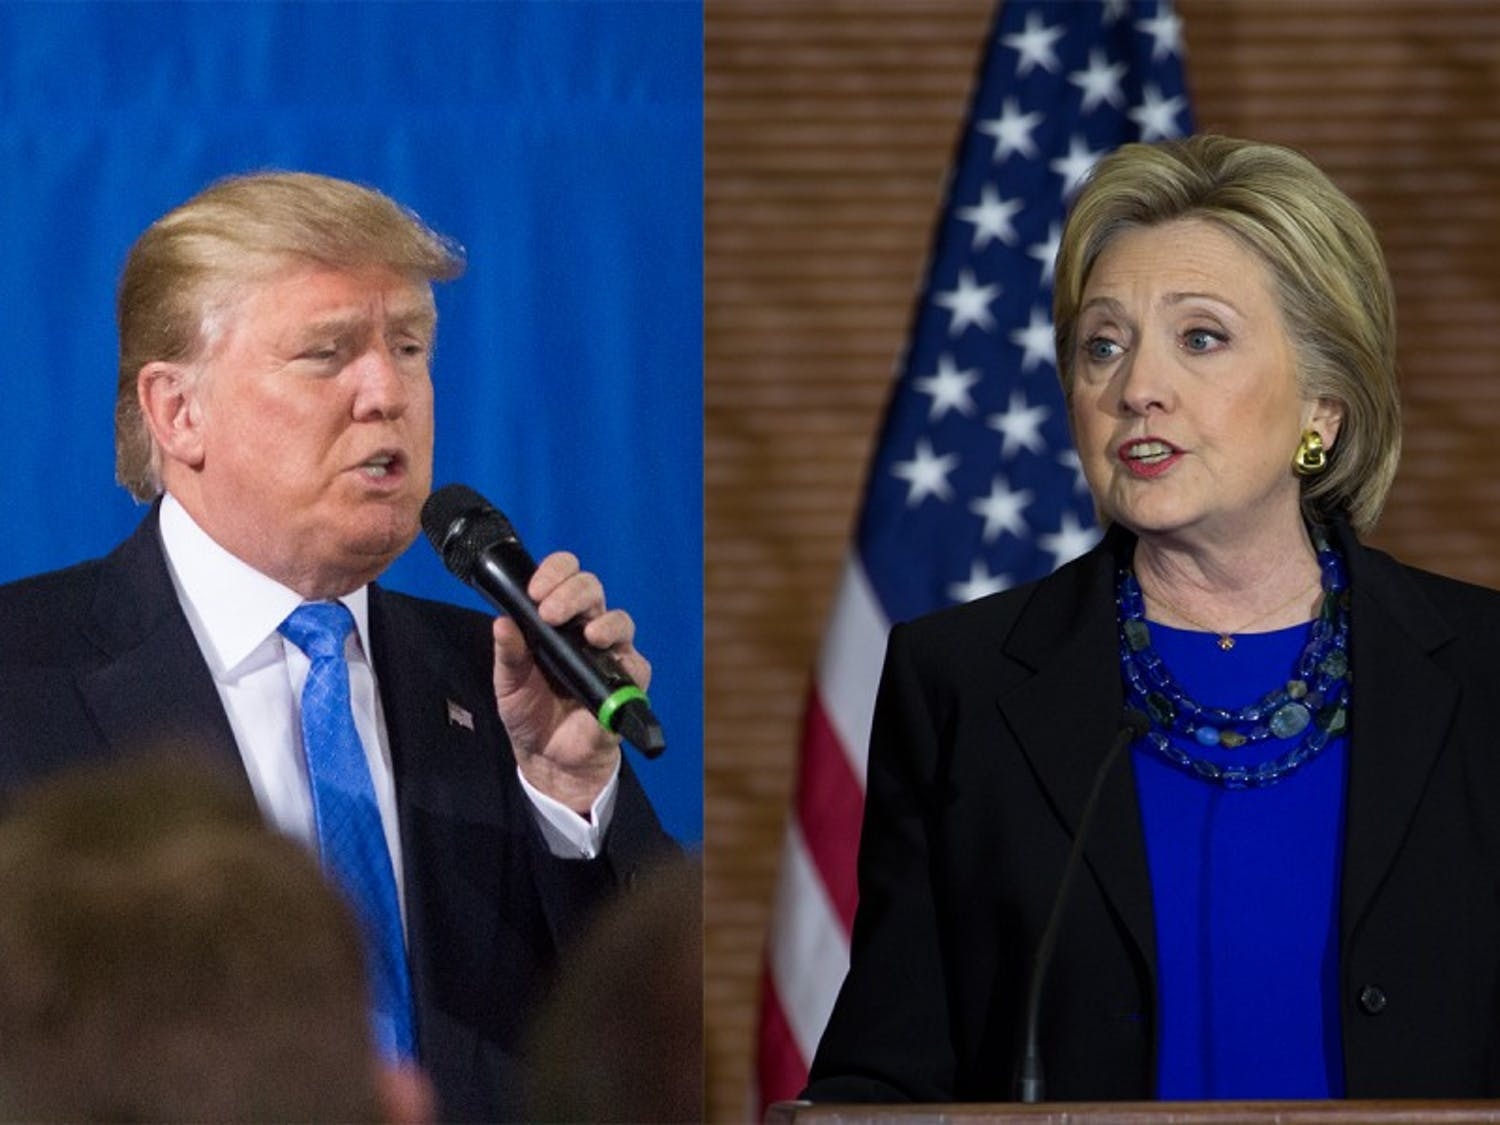 Hillary Clinton and Donald Trump squared off in the third and final presidential debate Wednesday in Las Vegas.